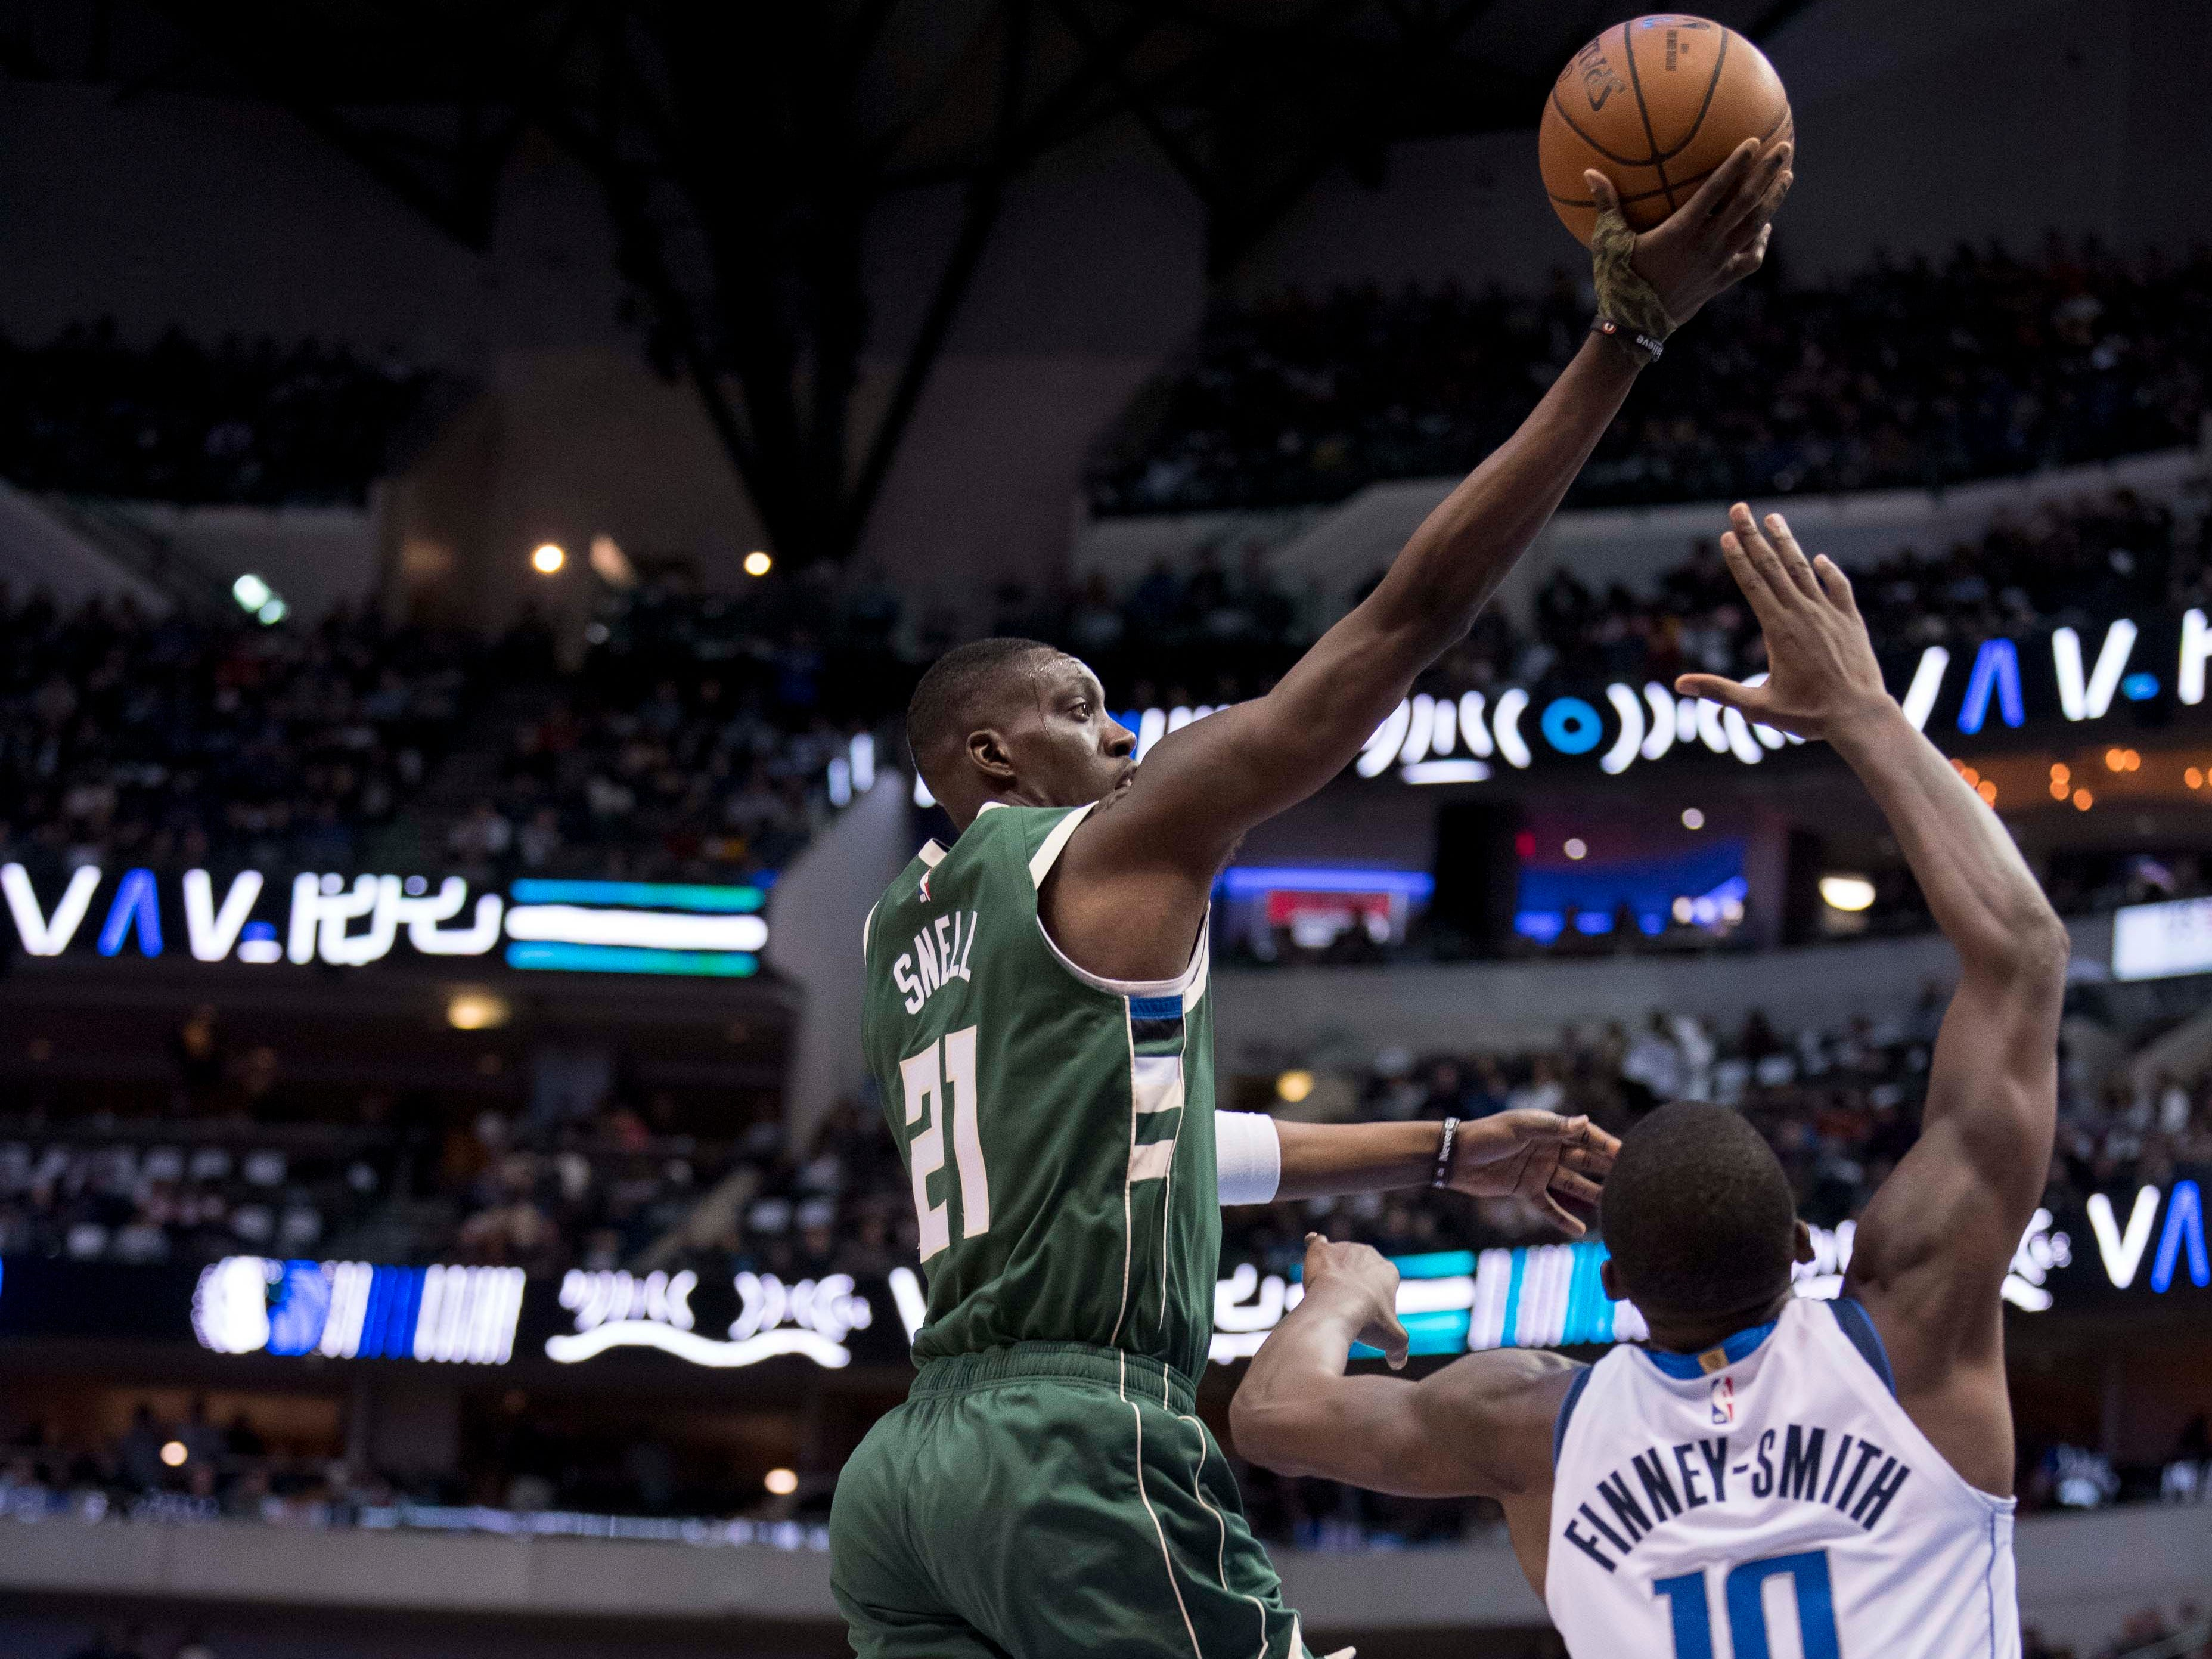 Bucks guard Tony Snell soars past Mavericks forward Dorian Finney-Smith as he goes in for a layup during the second quarter Friday night.